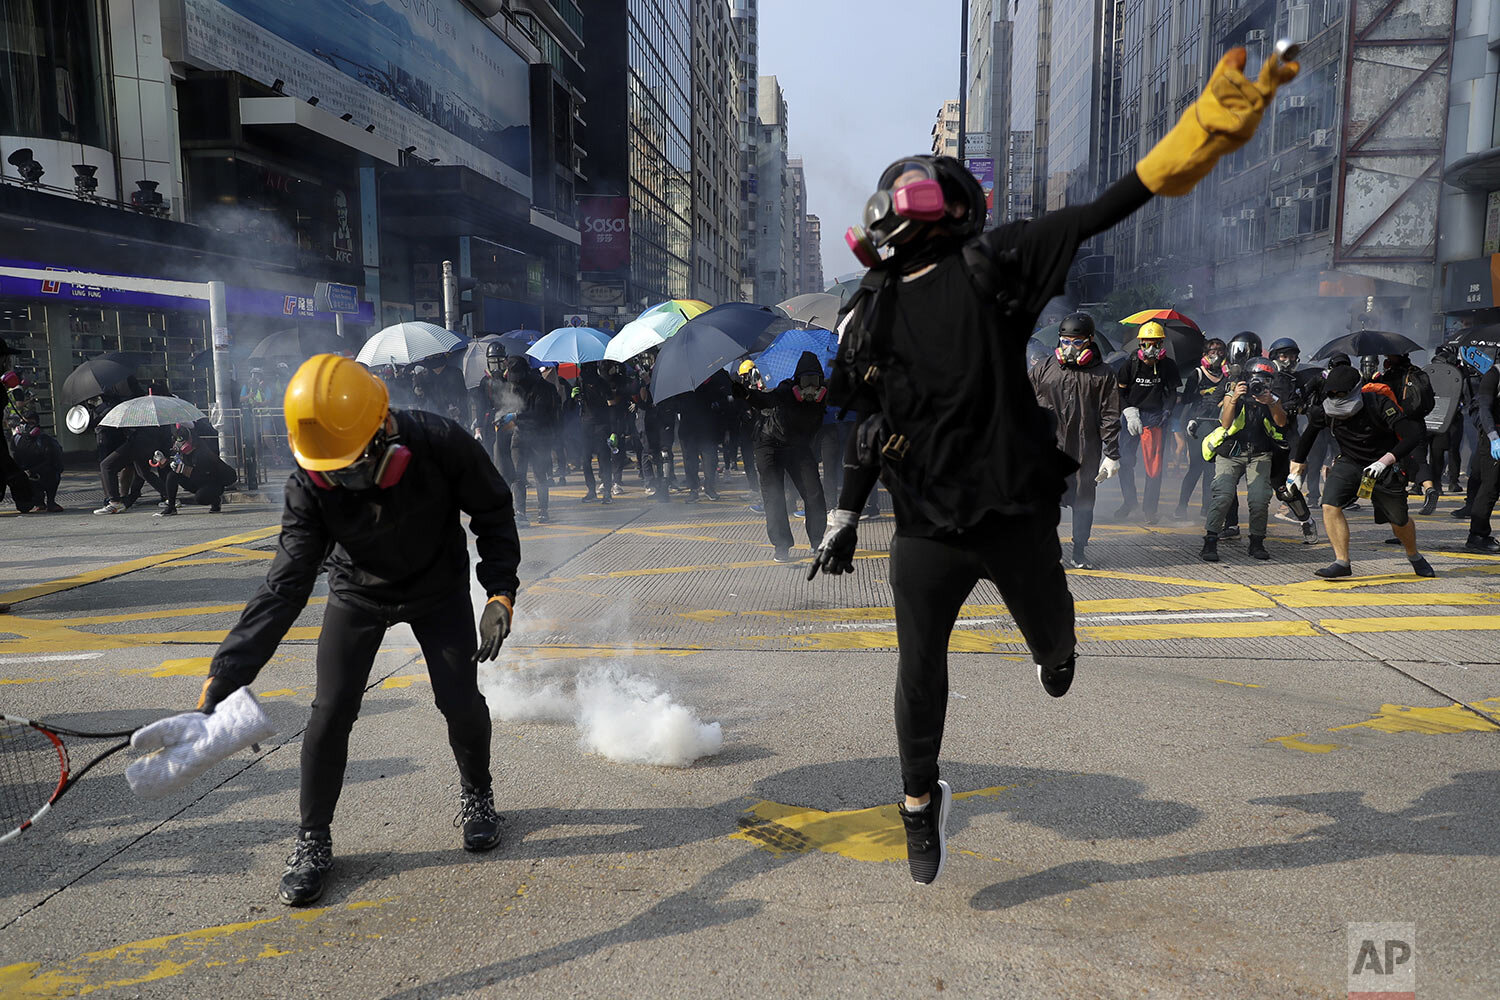 Protesters throw tear gas canisters fired by riot policemen during a rally in Hong Kong, Sunday, Oct. 20, 2019.  (AP Photo/Mark Schiefelbein)